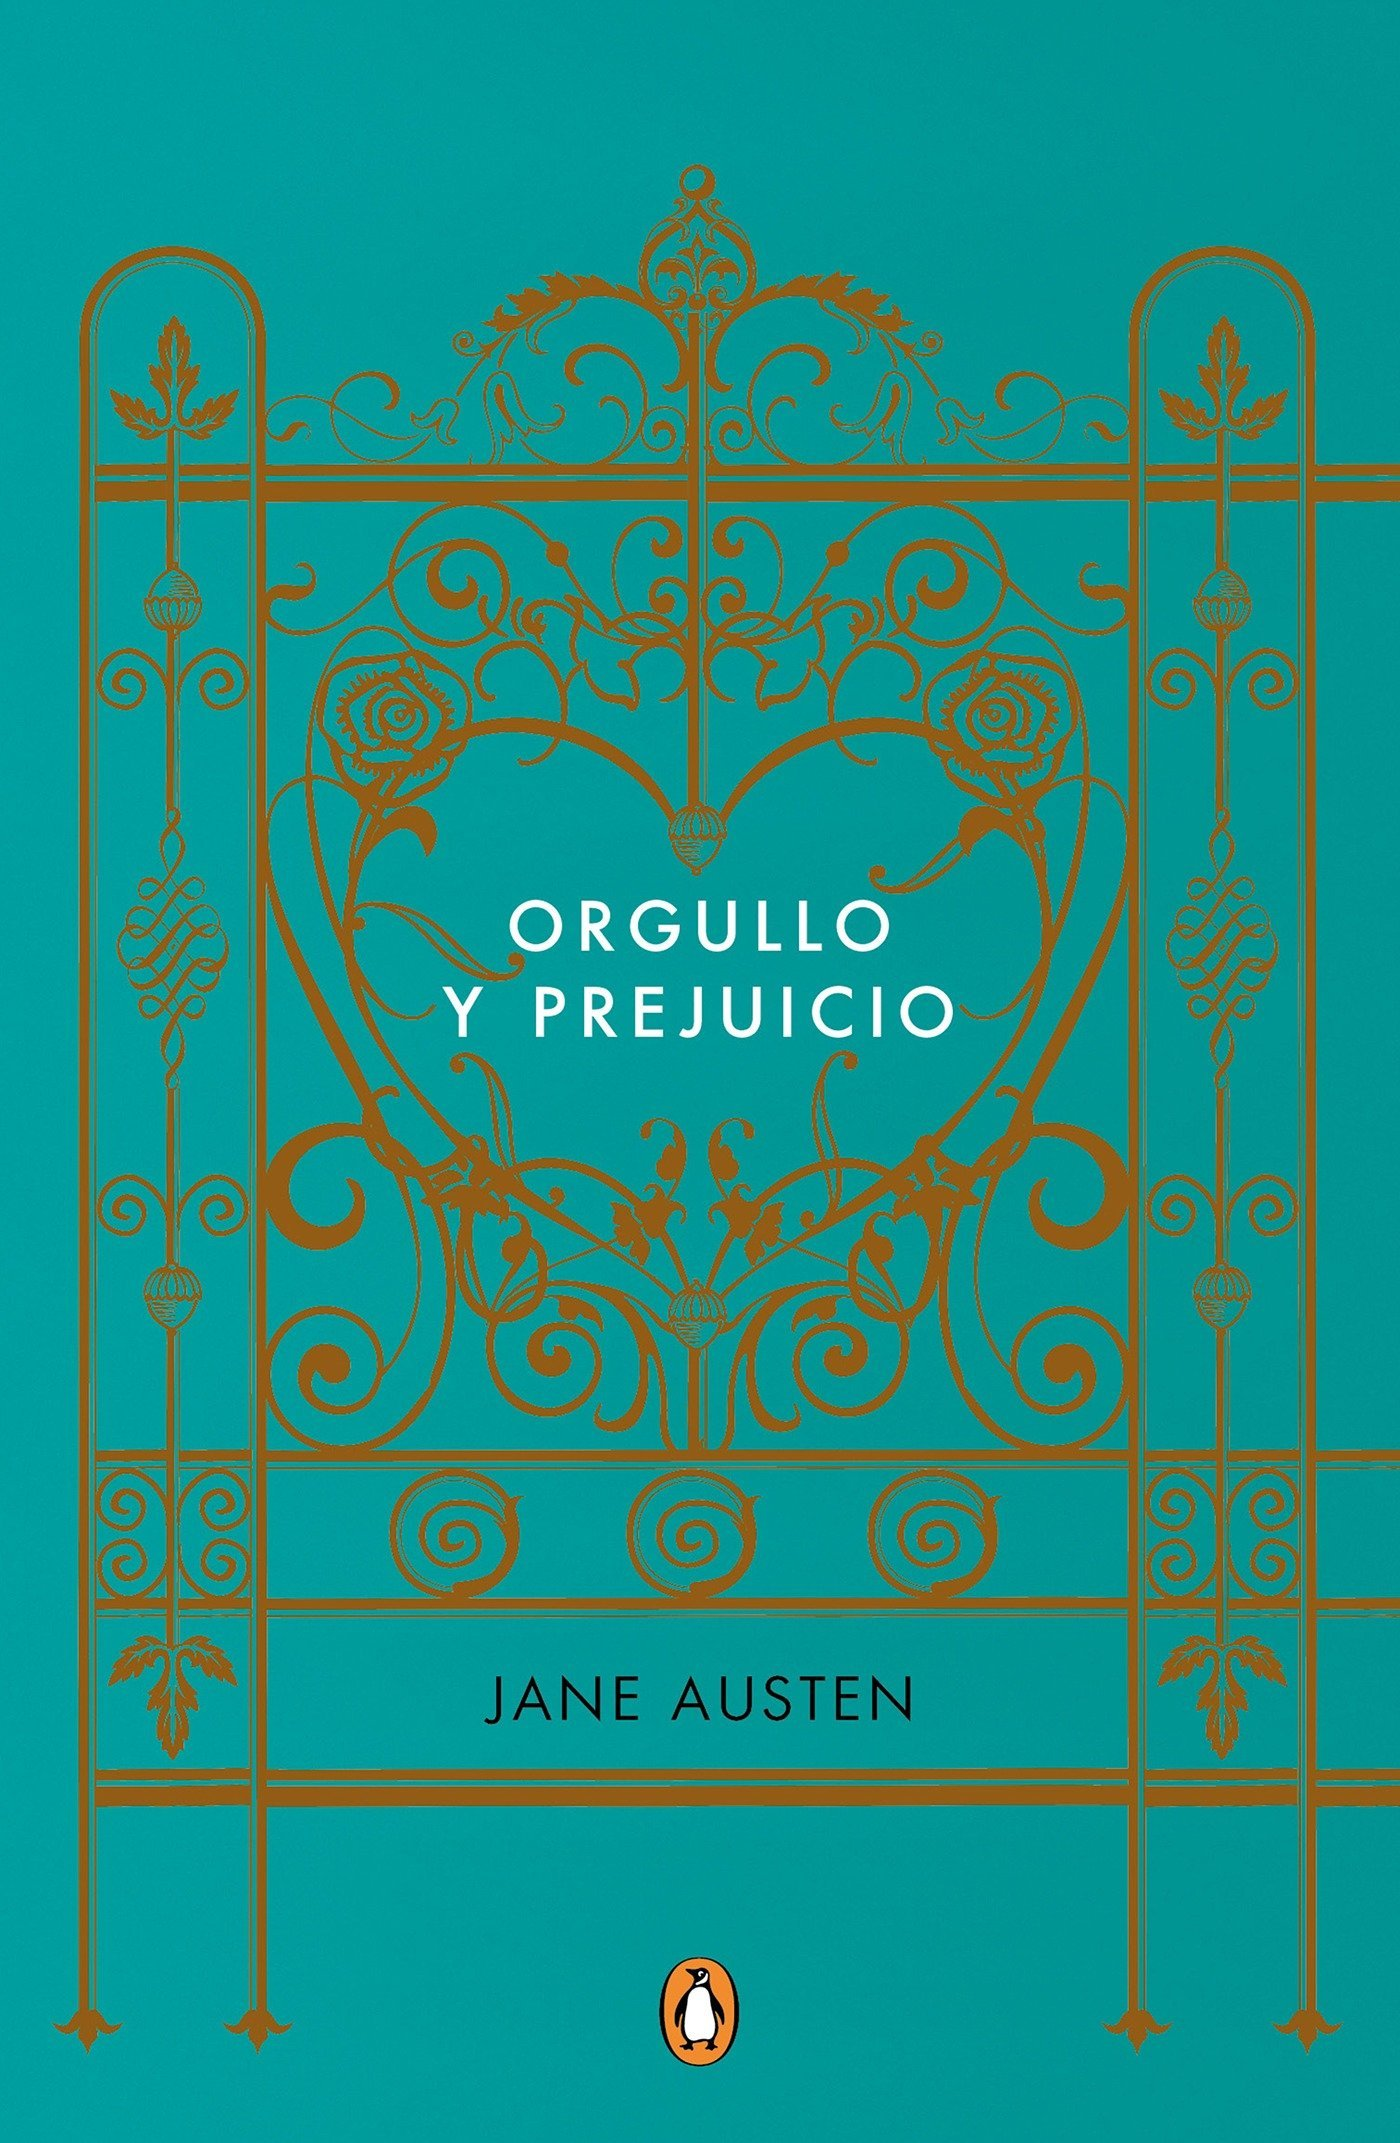 orgullo y prejuicio edicion conmemorativa pride and prejudice commemorative edition spanish edition